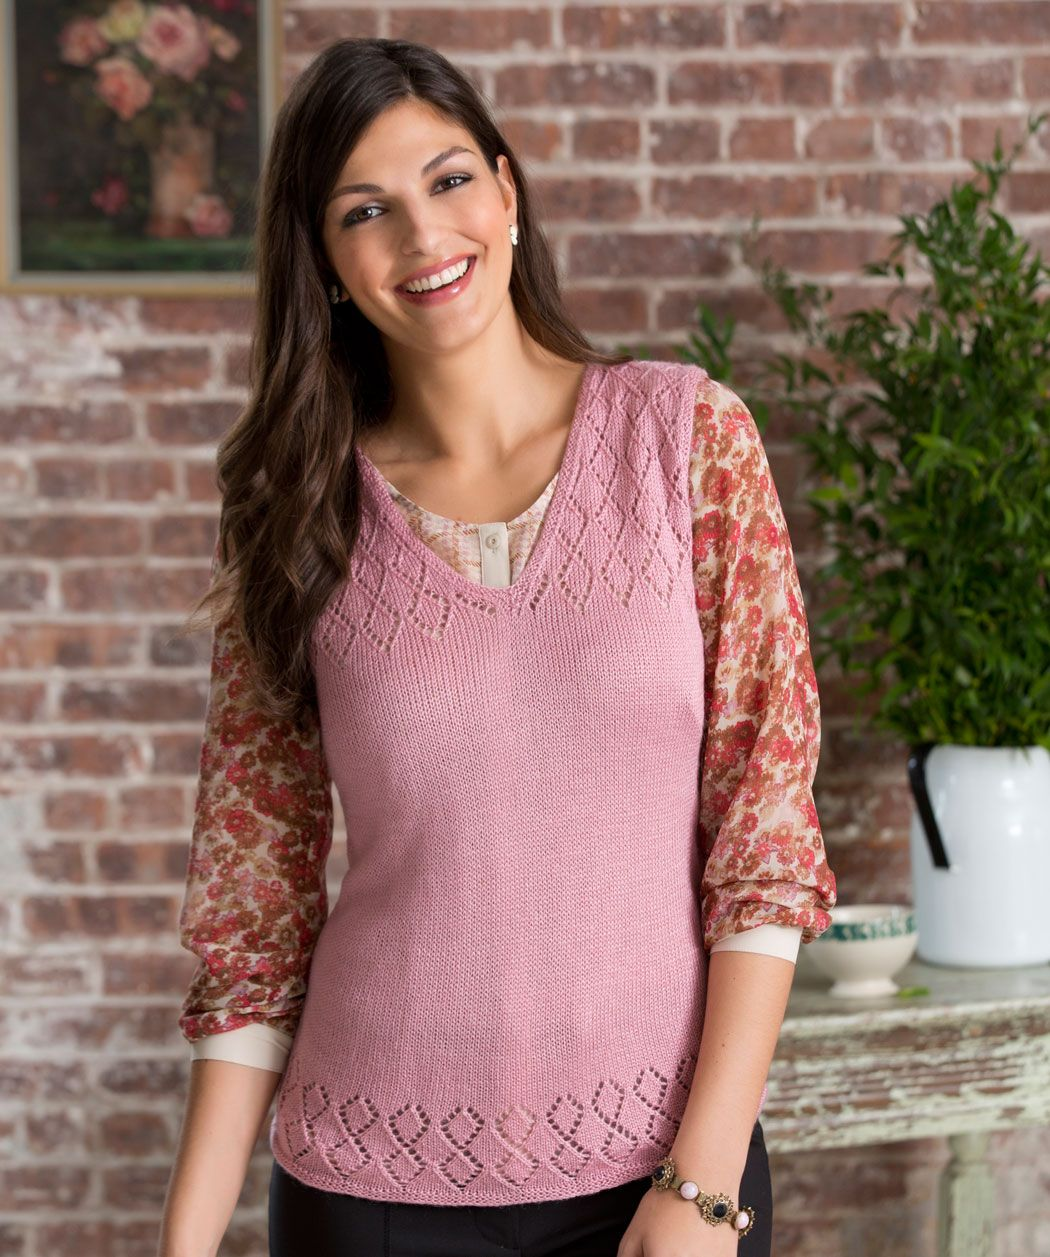 Dress up your outfit with a lovely knit vest! The diamond lace ...